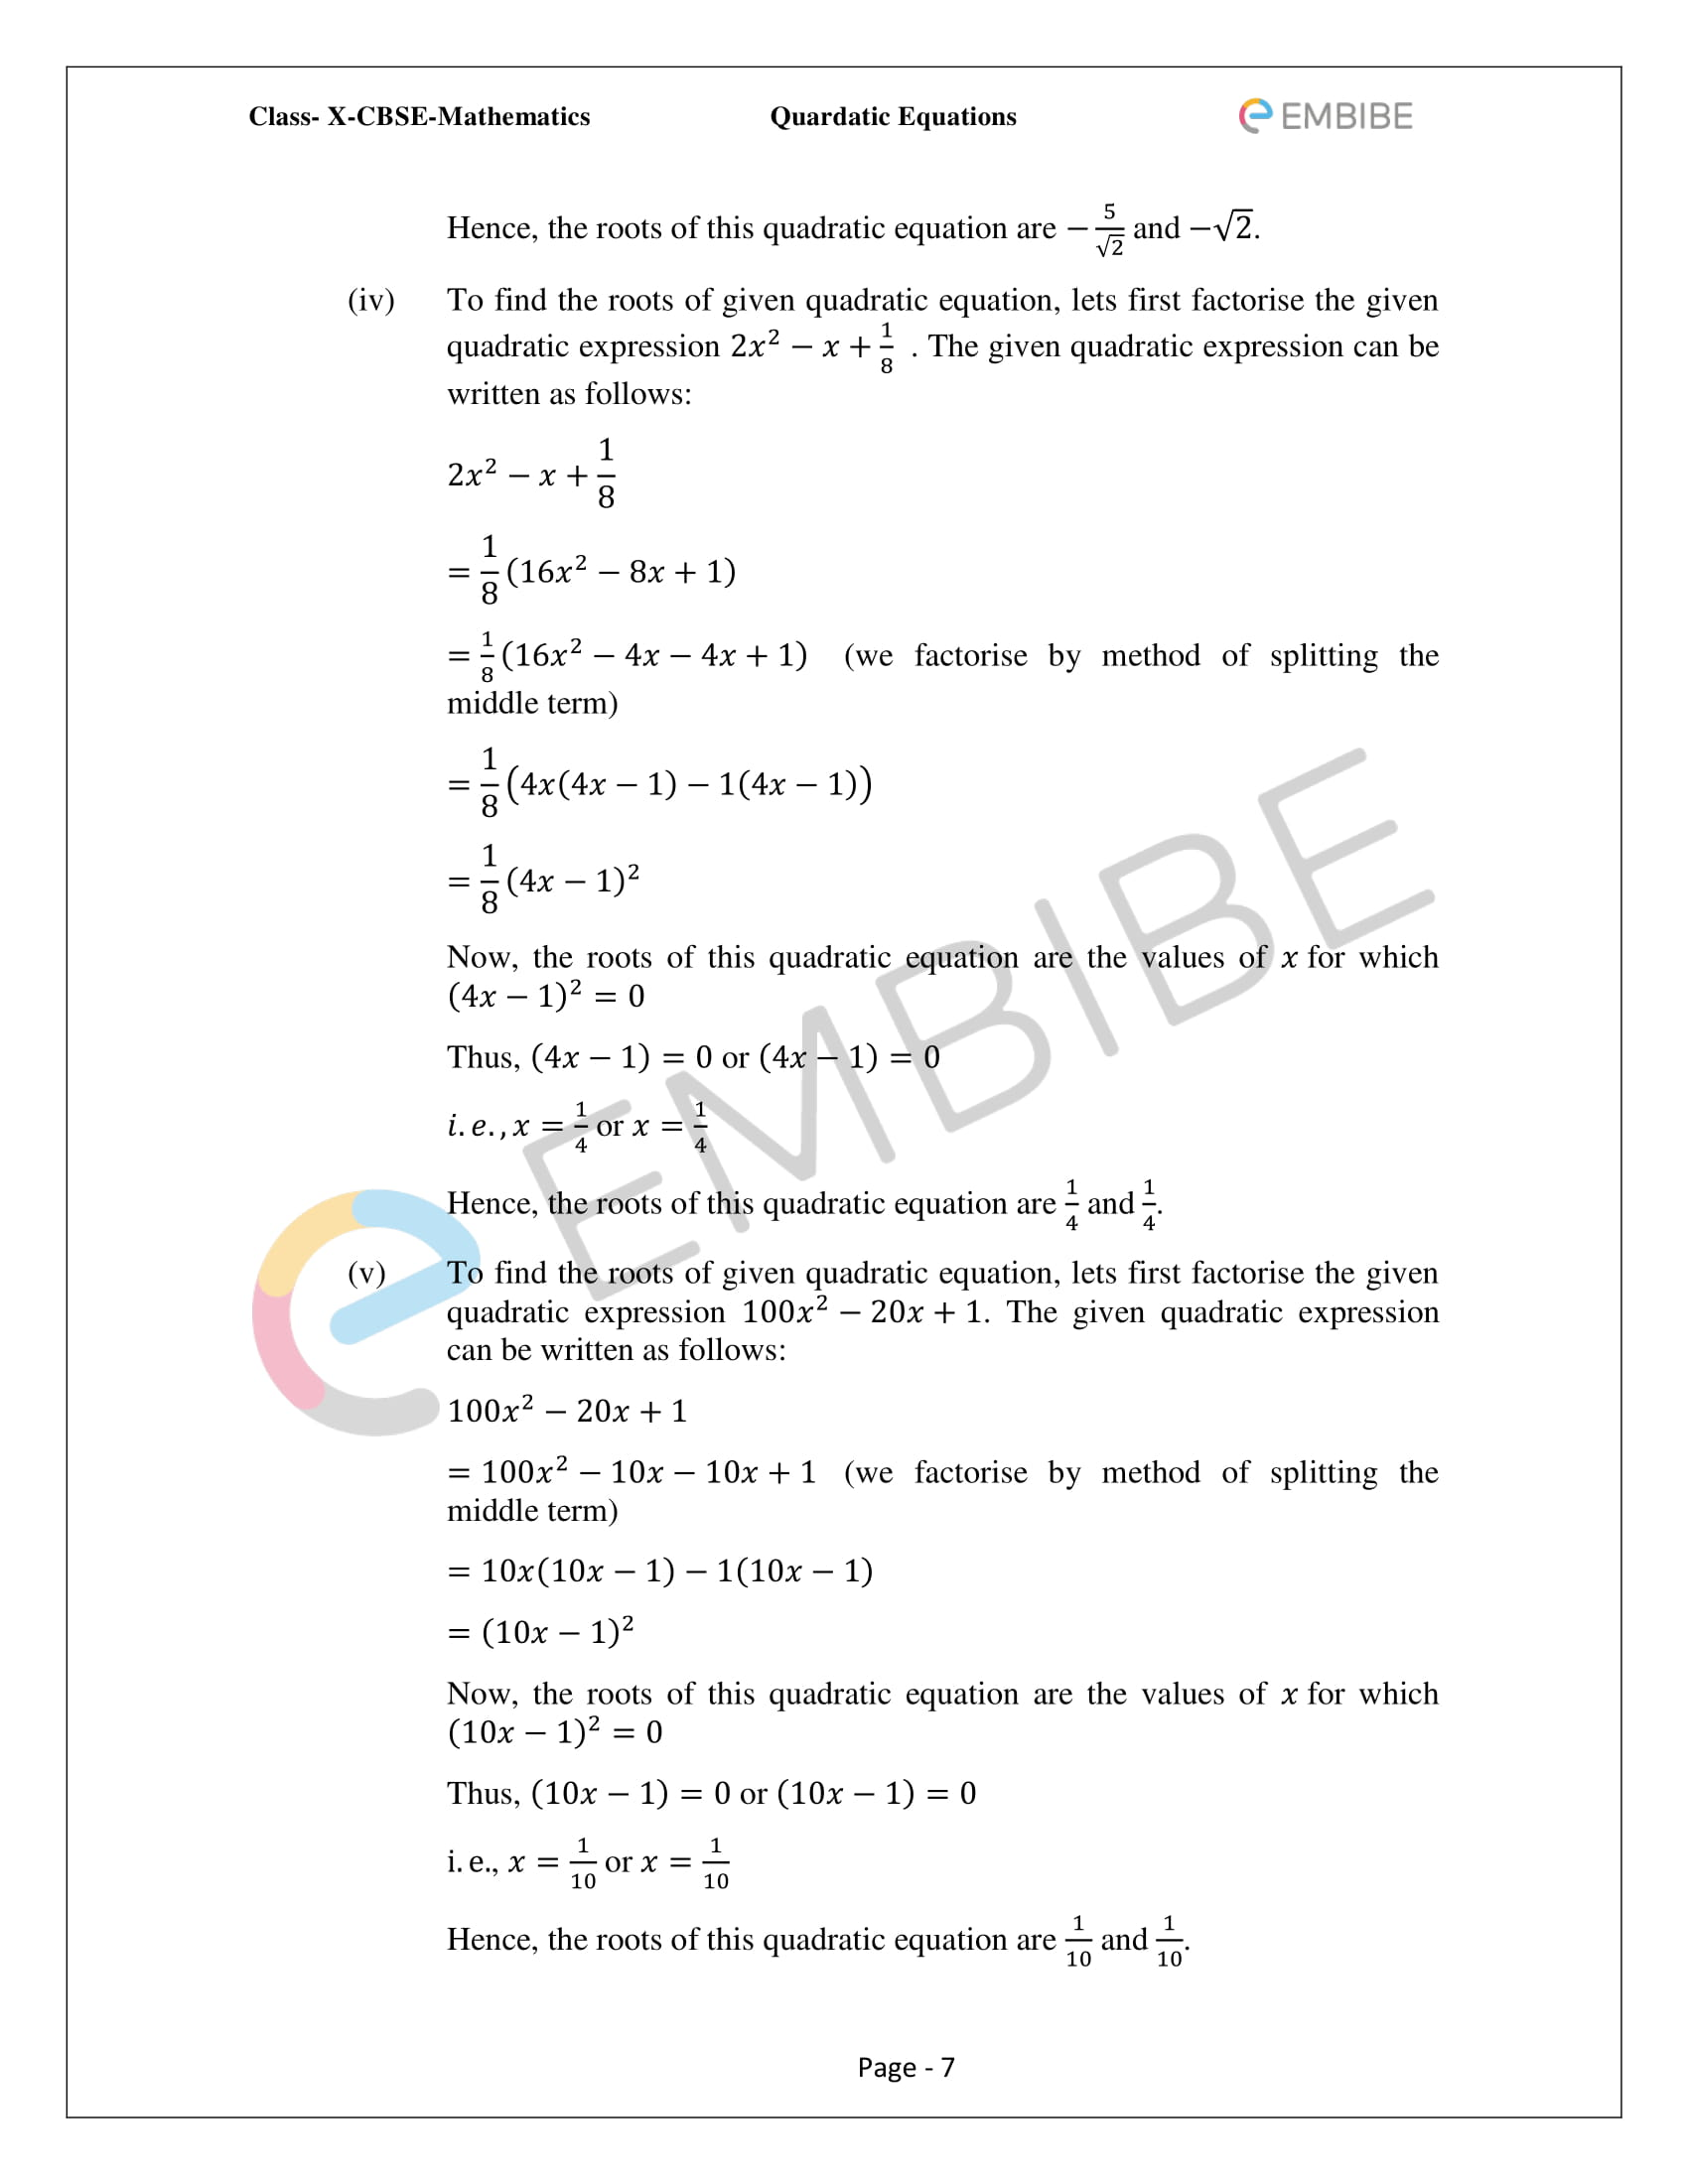 CBSE NCERT Solutions For Class 10 Maths Chapter 4 – Quadratic Equations - 7